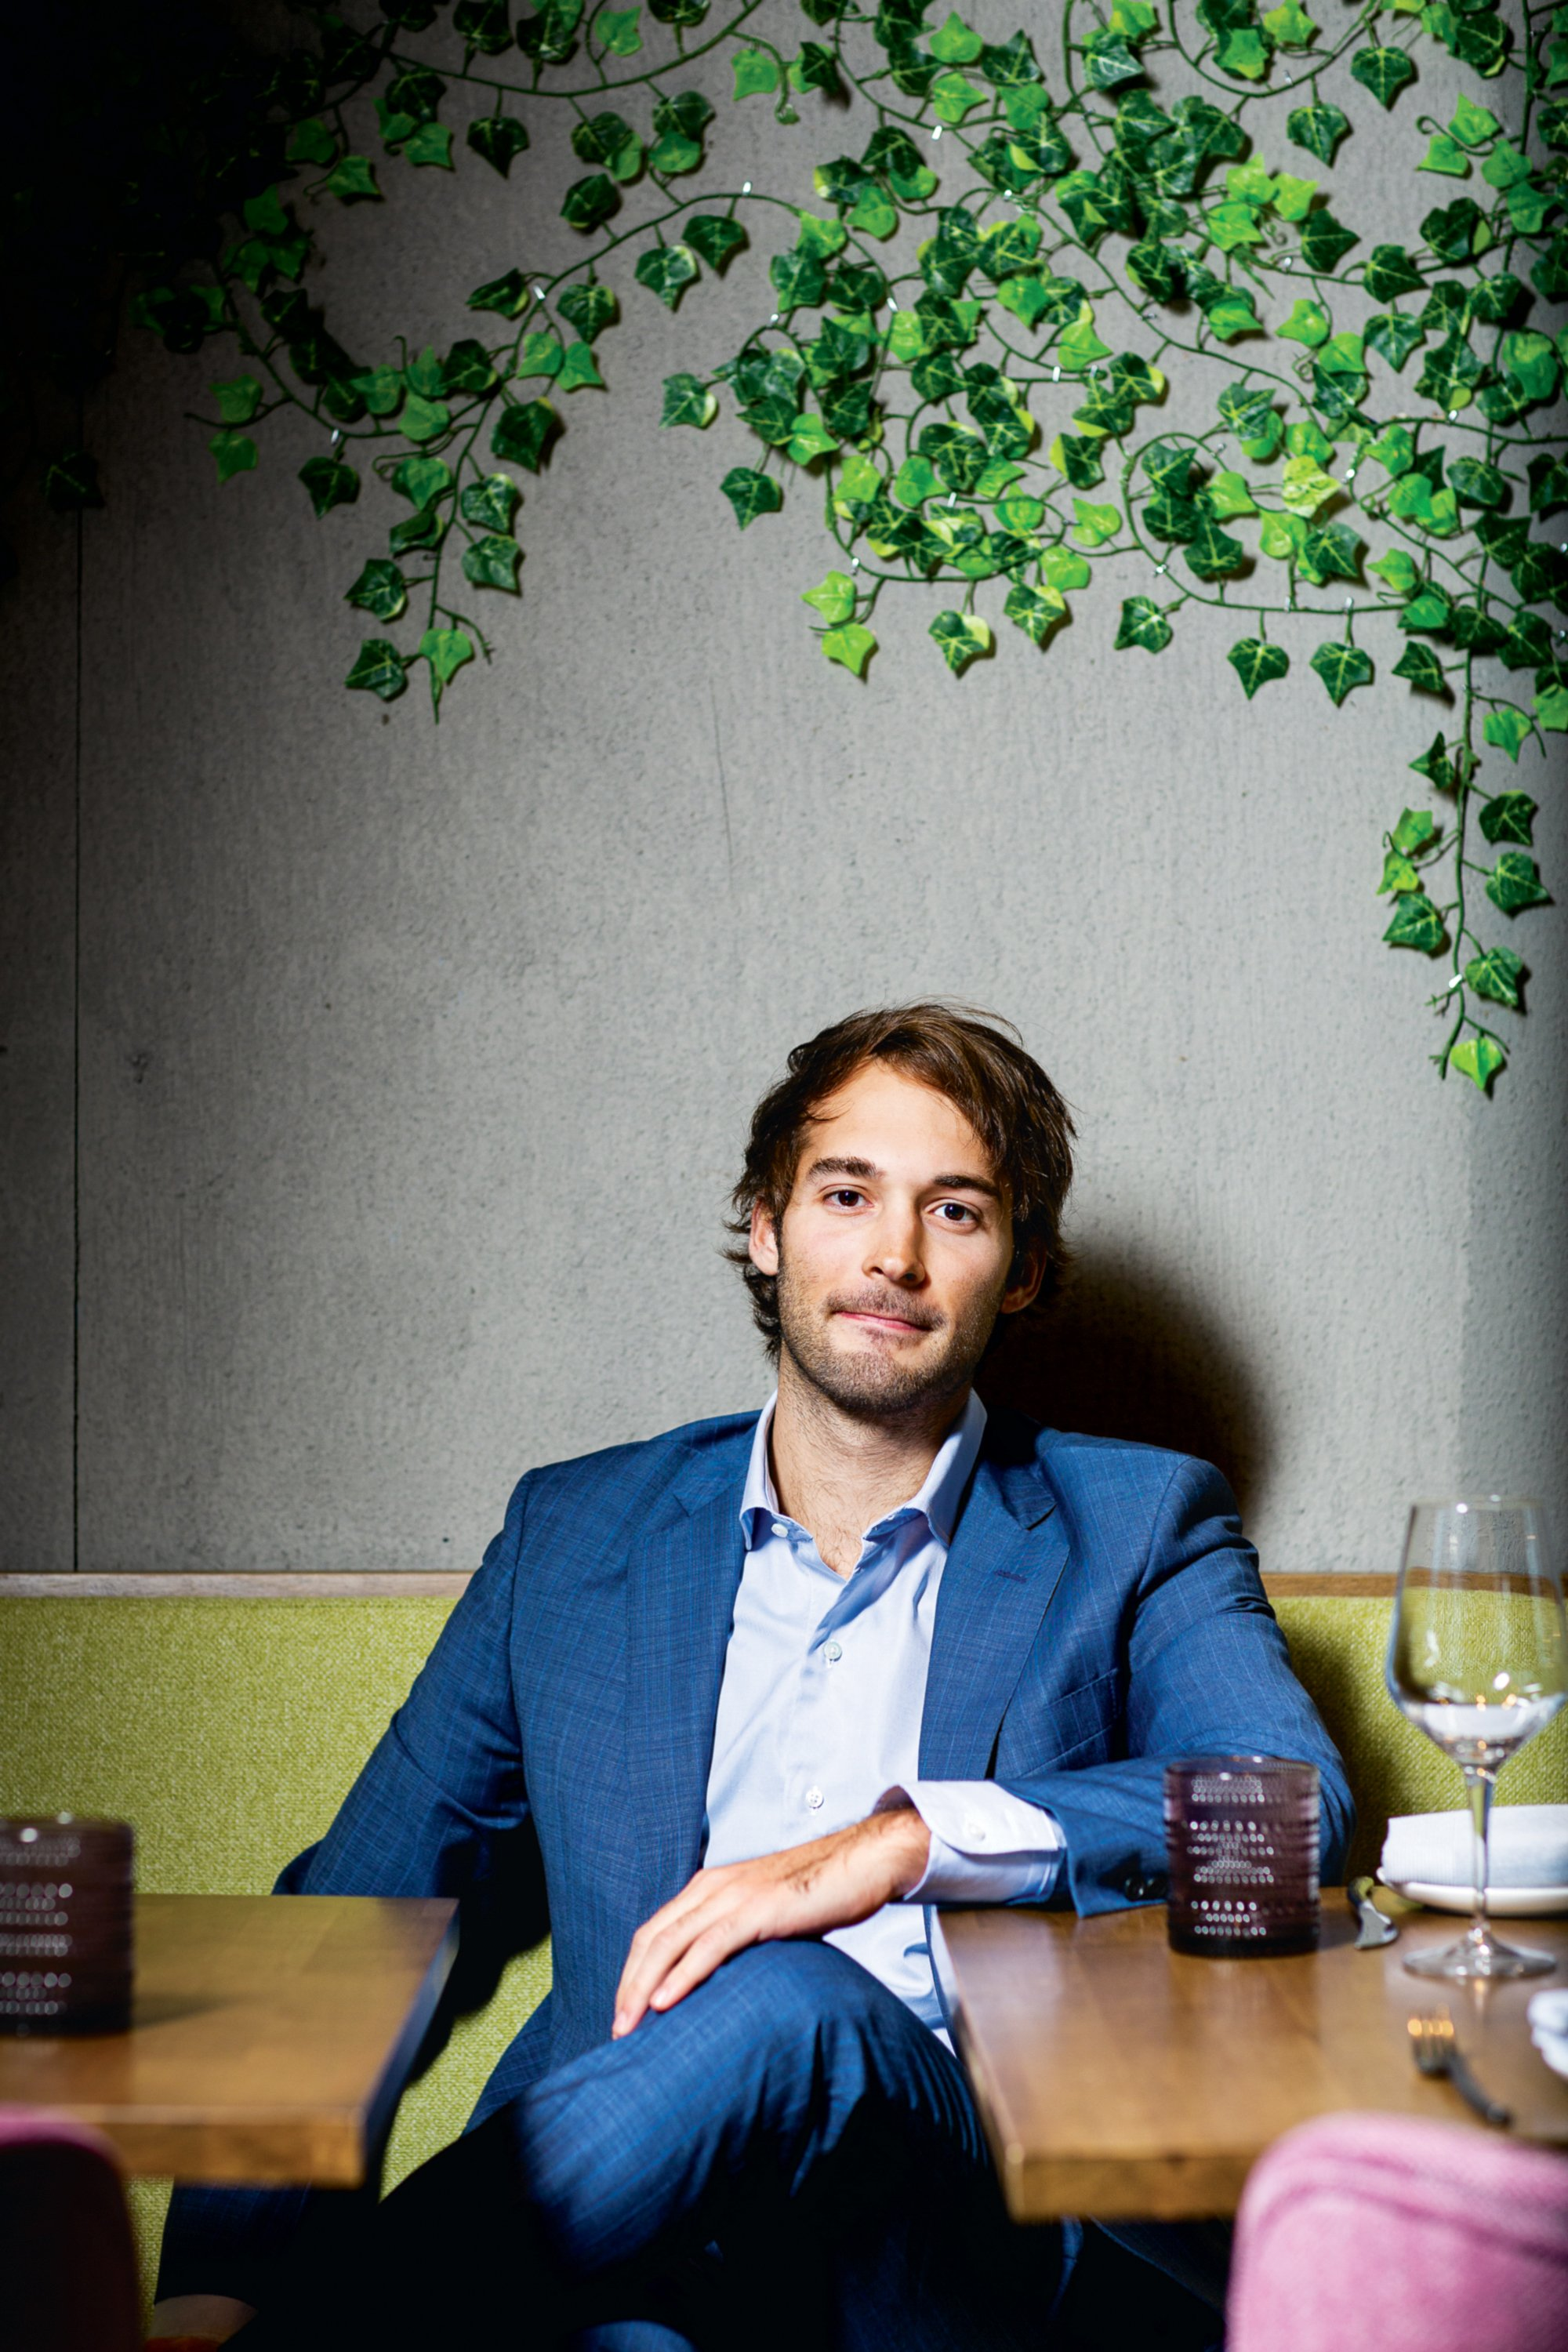 Juan Carlos Figueredo and his older brother launched a restaurant app and have a stake in Seven Reasons. Photographed at Seven Reasons.